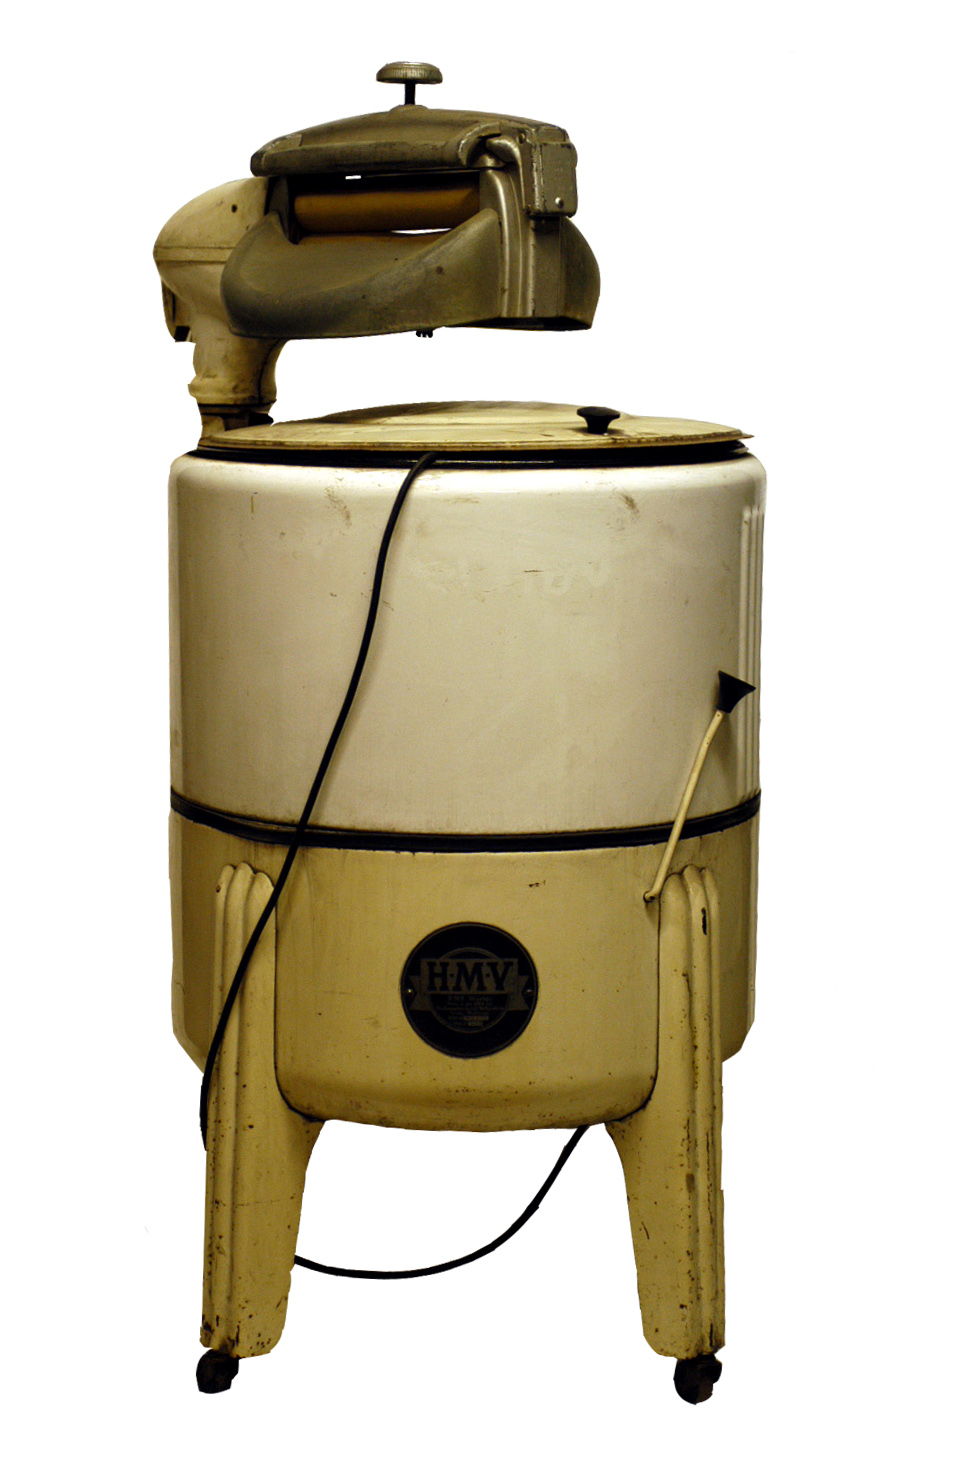 Colour photograph showing a washing machine. There is a large drum section on the bottom and it is top loaded. Over the lid is a small mangle.